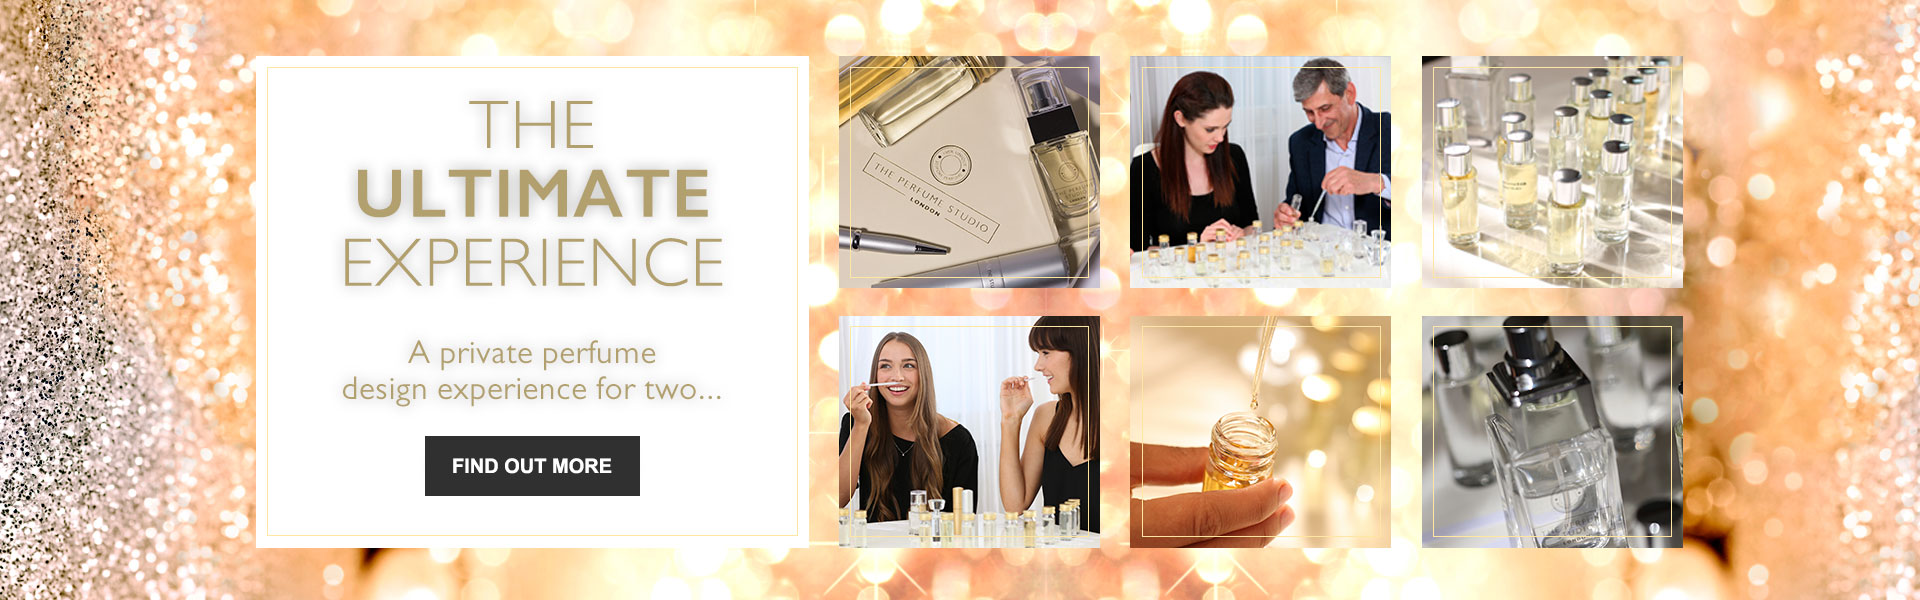 The Ultimate Experience - A private perfume experience for 2